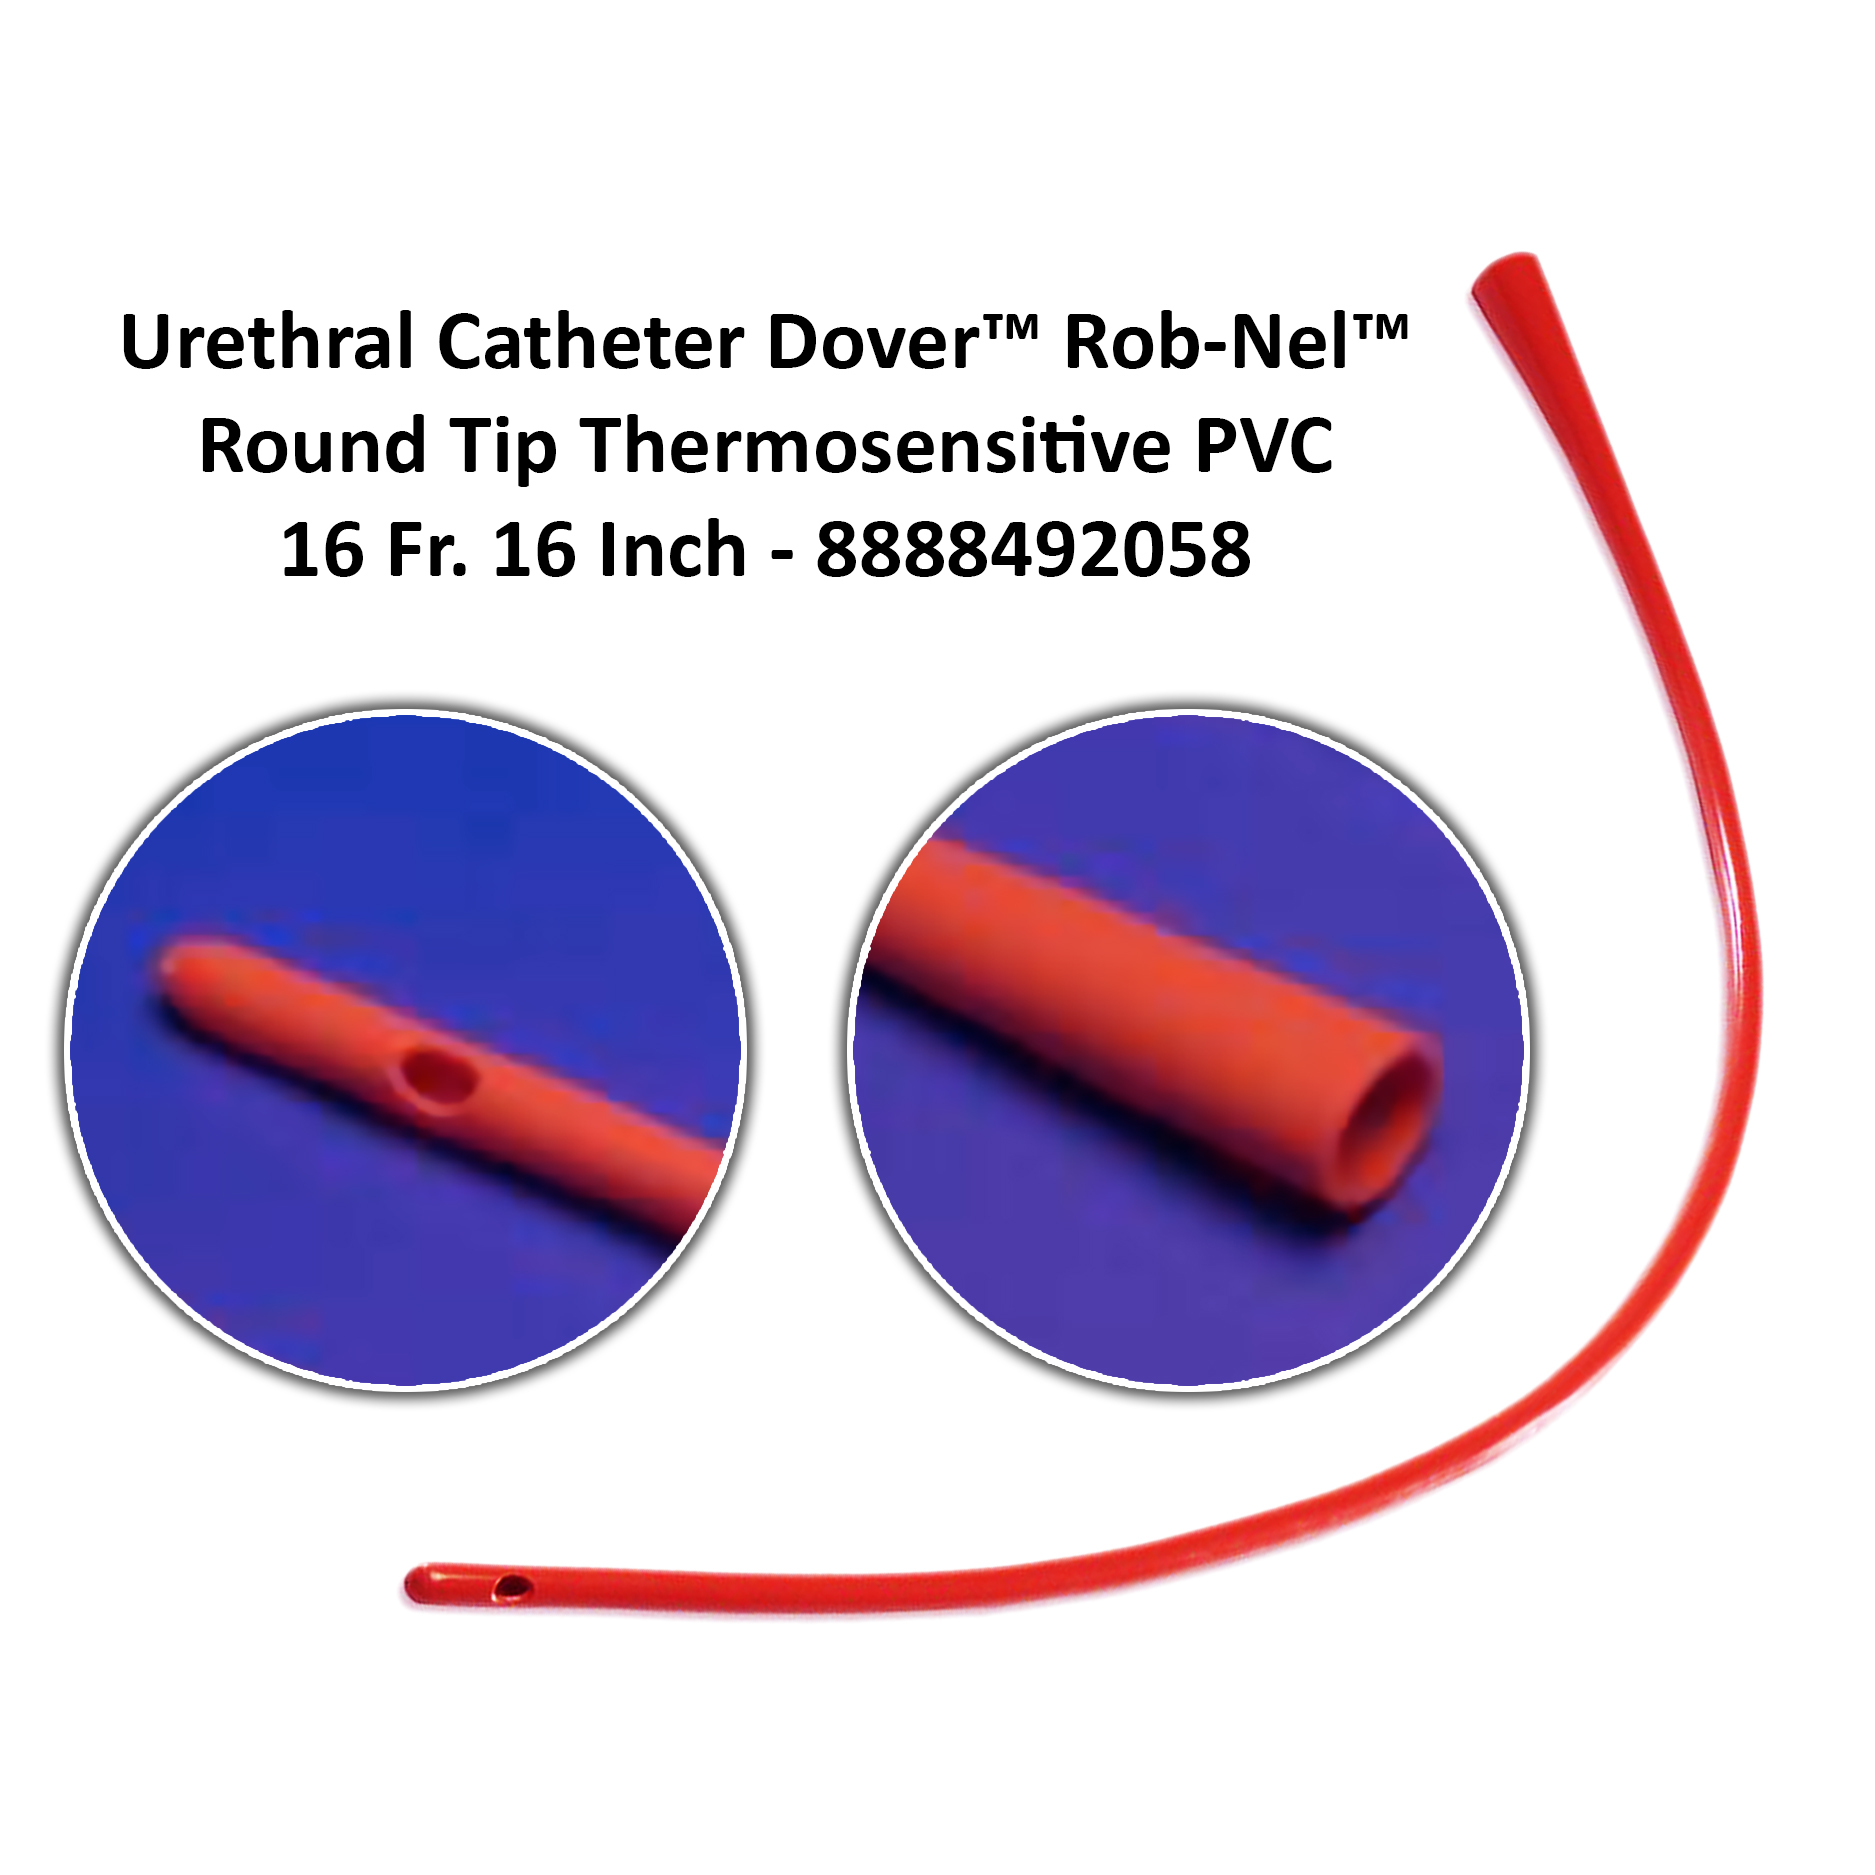 Urethral Catheter Dover™ Rob-Nel™ Round Tip Thermosensitive PVC 16 Fr. 16 Inch - 8888492058